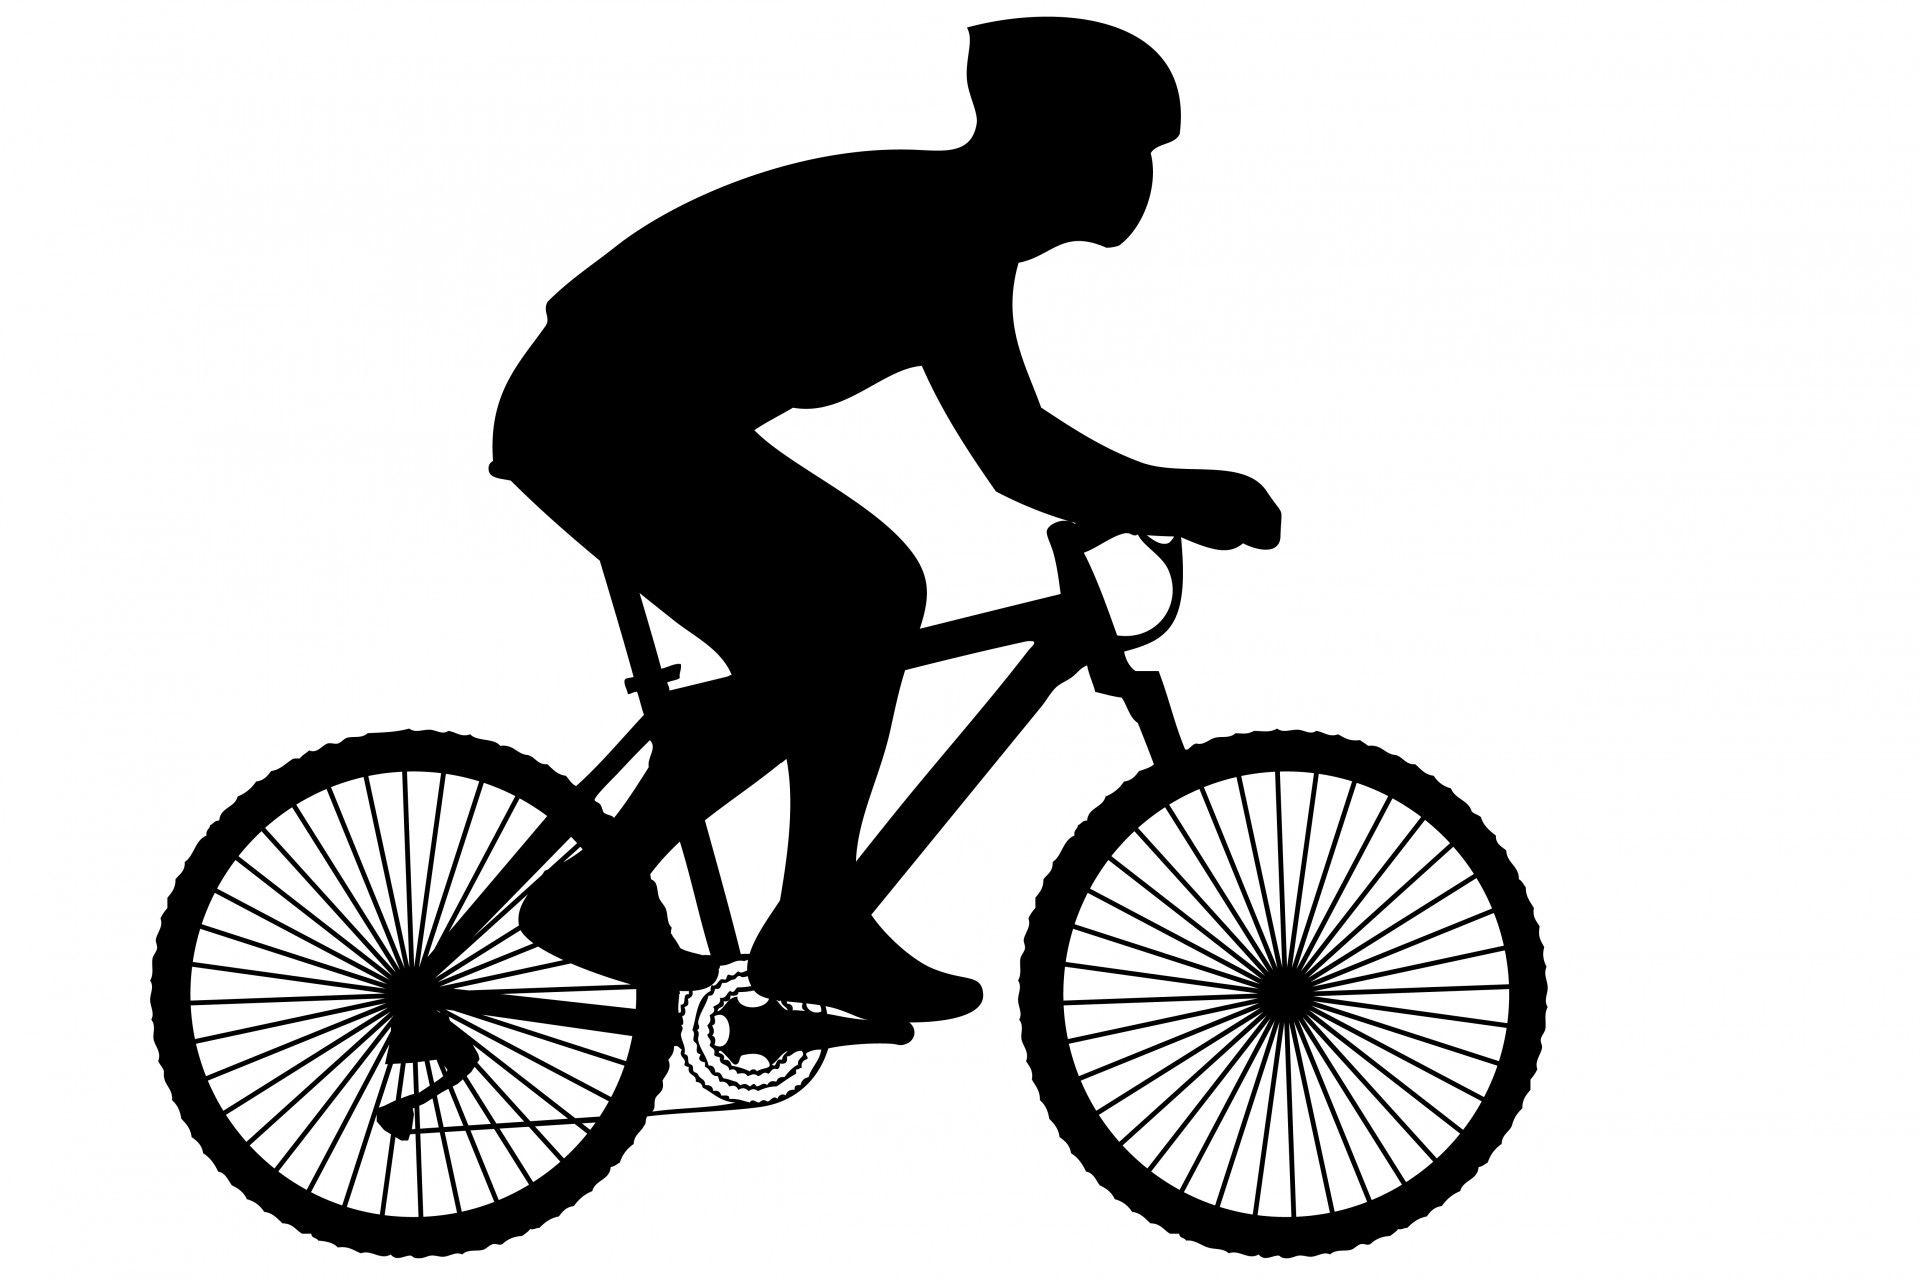 svg library download Biking clipart. Black silhouette of a.